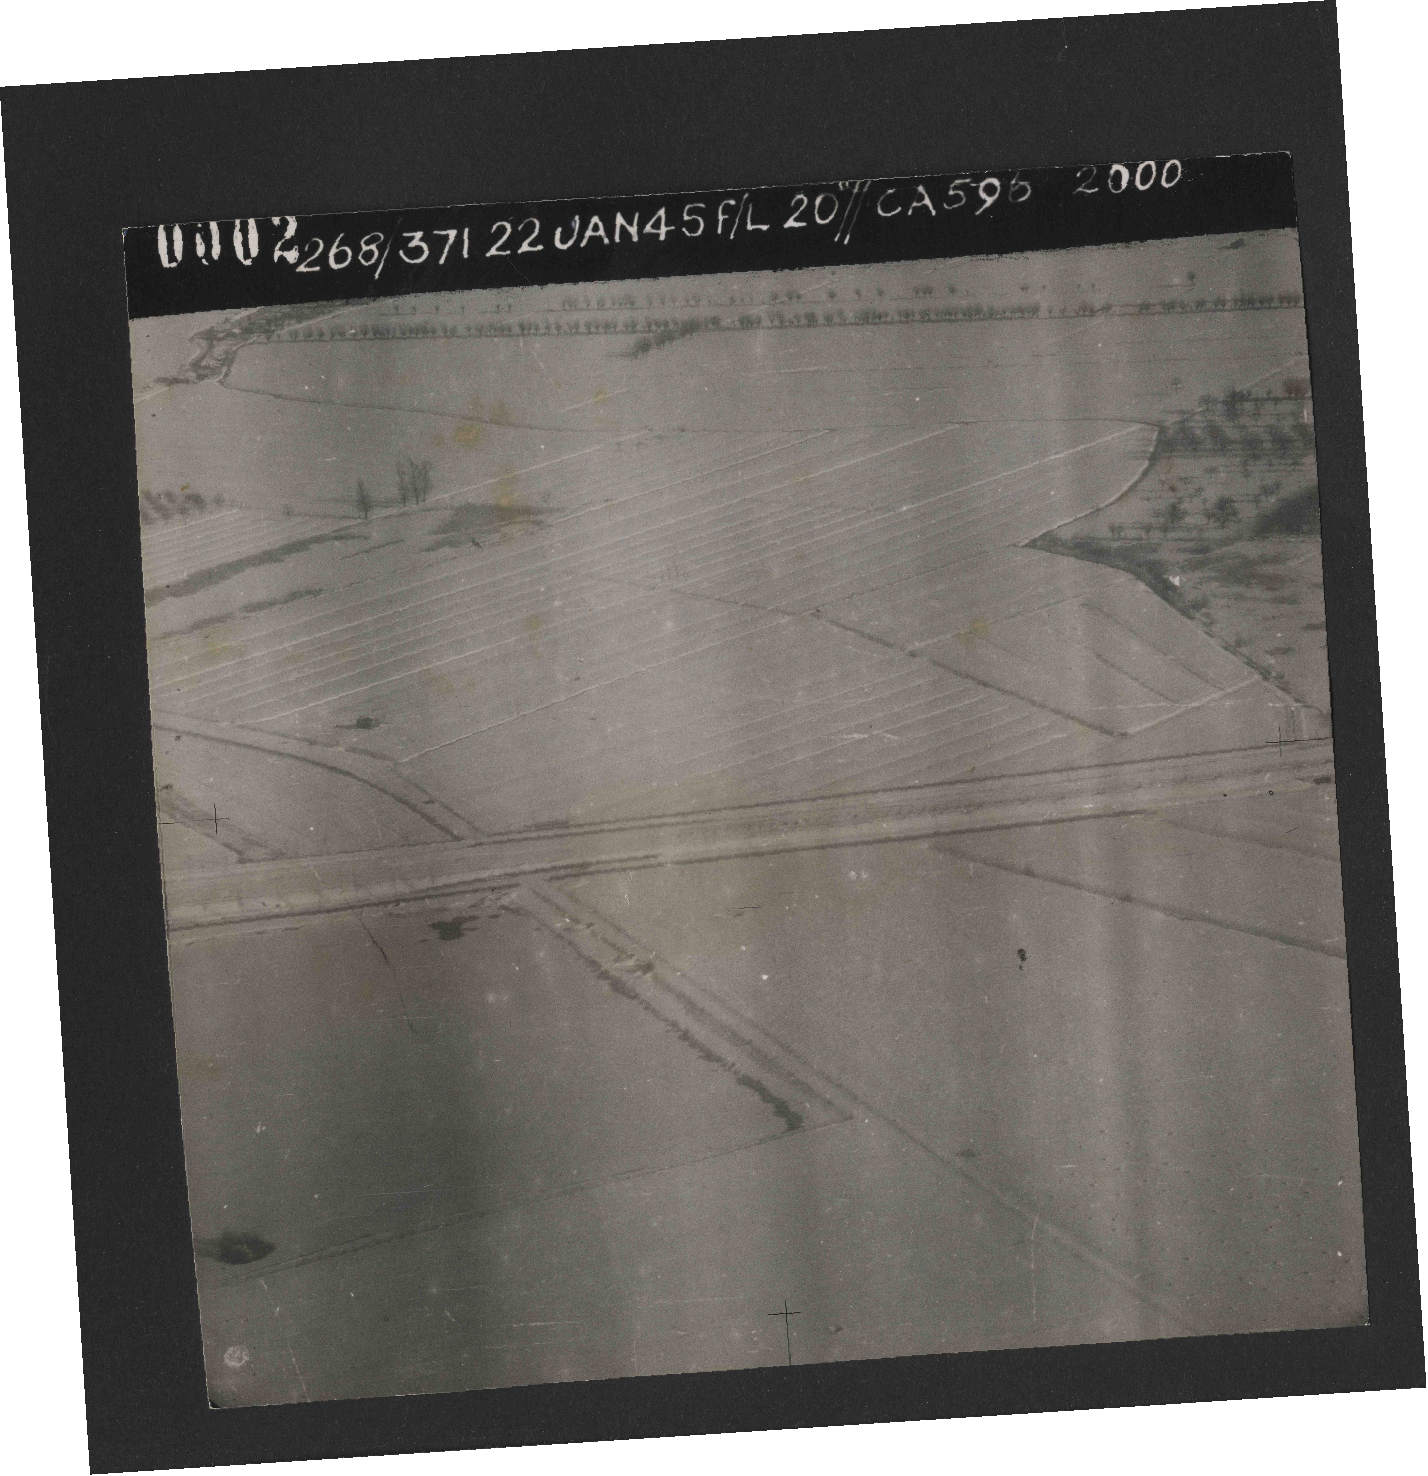 Collection RAF aerial photos 1940-1945 - flight 540, run 01, photo 0002